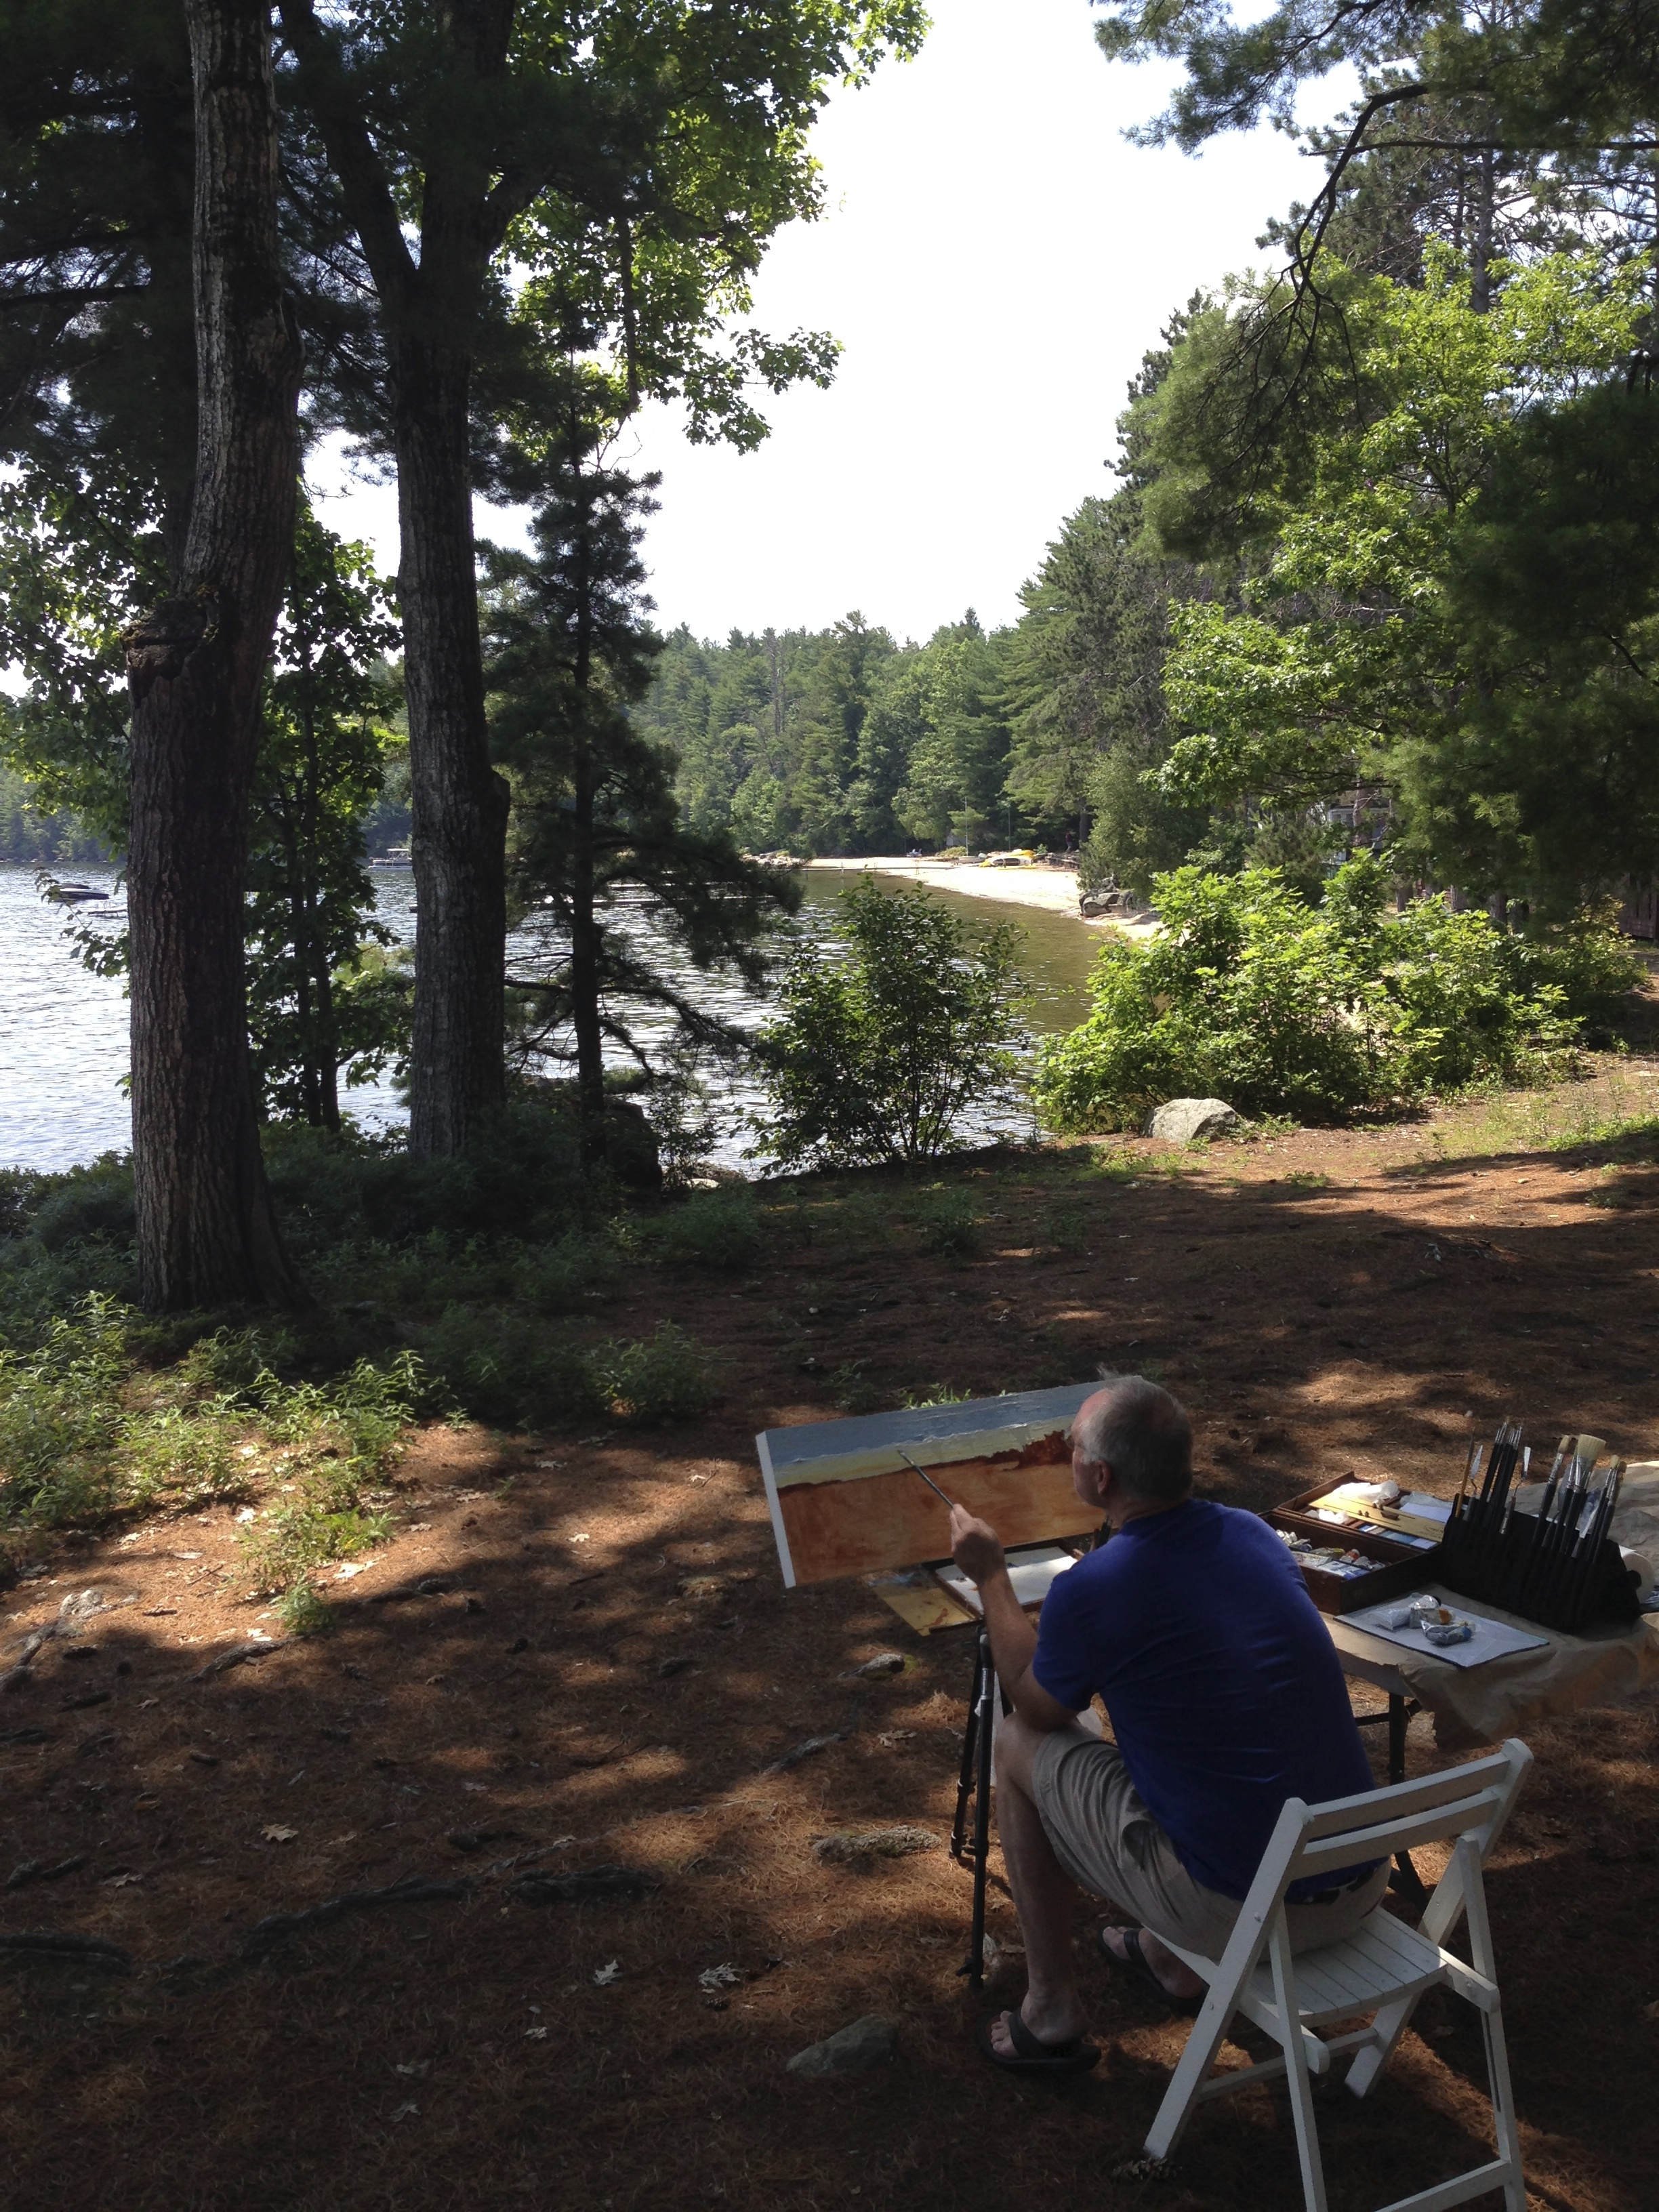 Painting the landscape plein-air, Sebago Lake, Maine, July 2013 - Visiting Artist commission for Camp O-AT-KA.